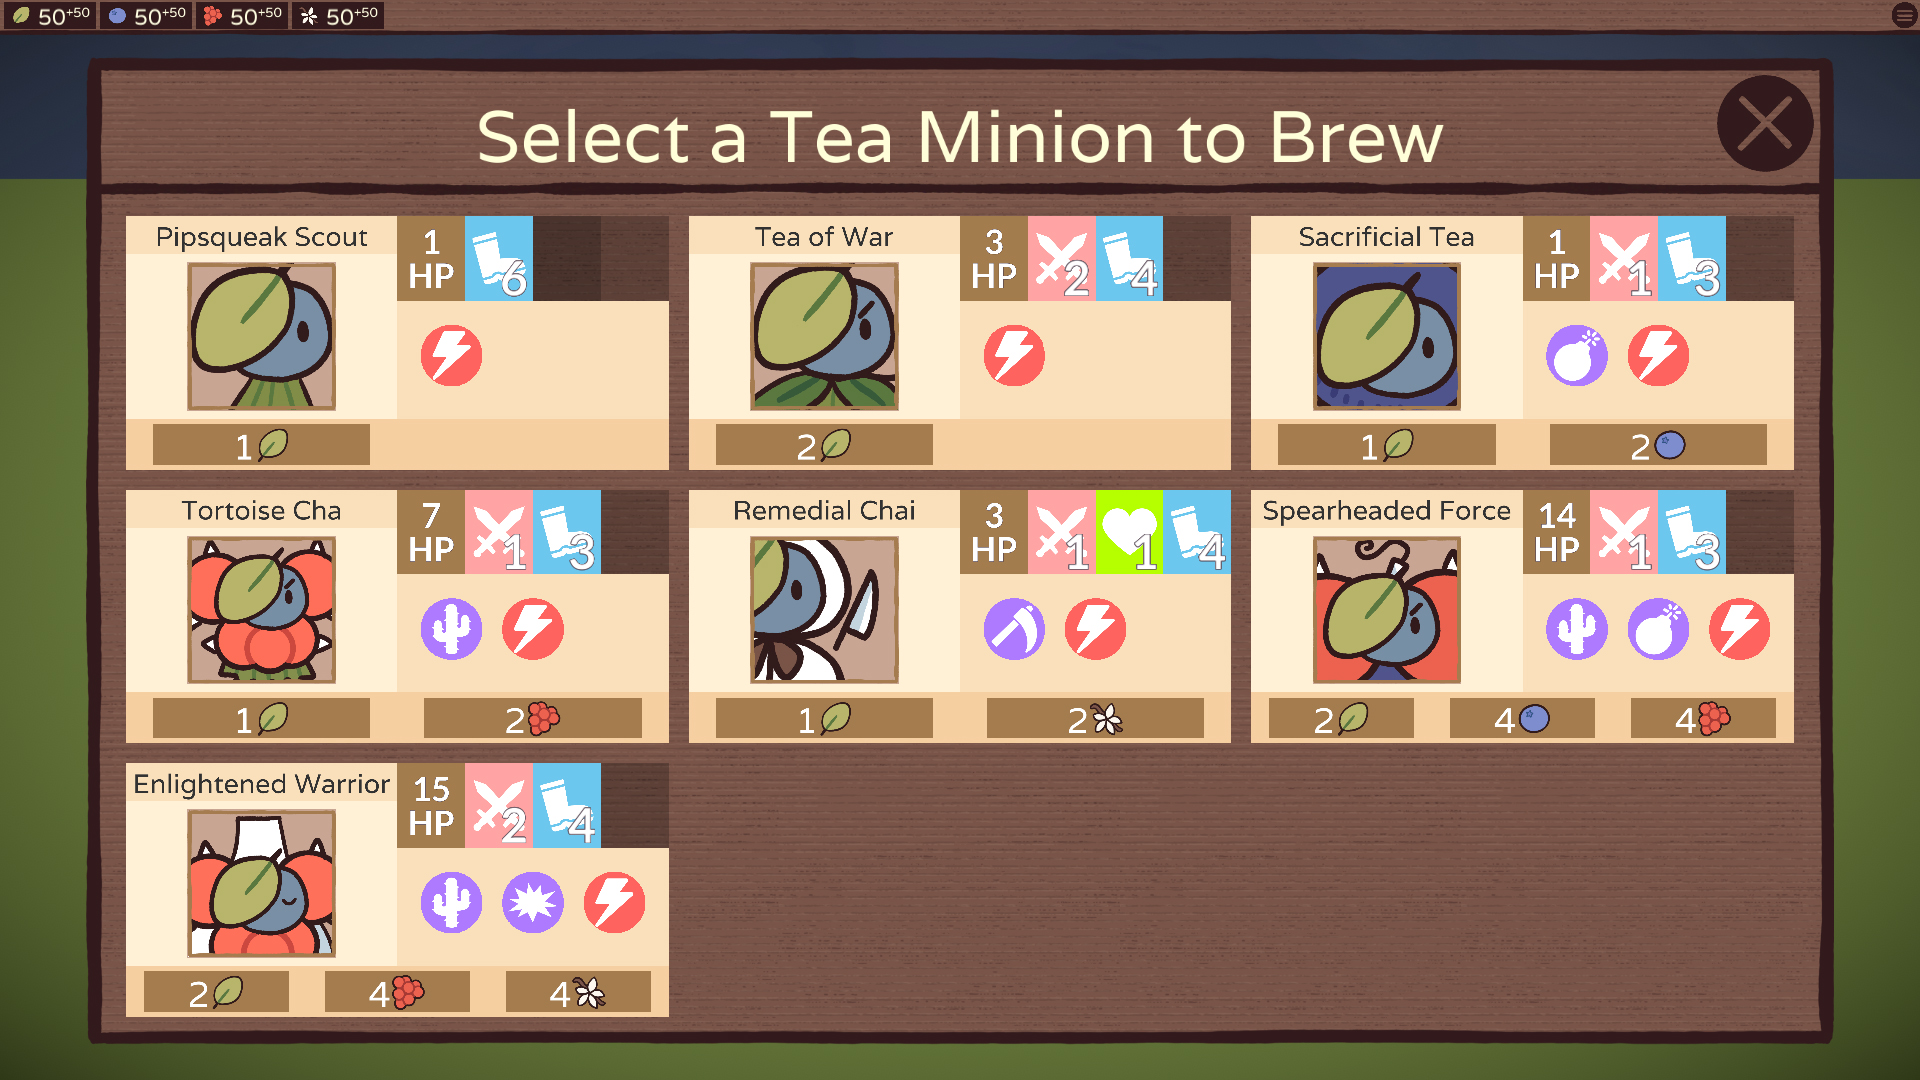 Updated brew menu